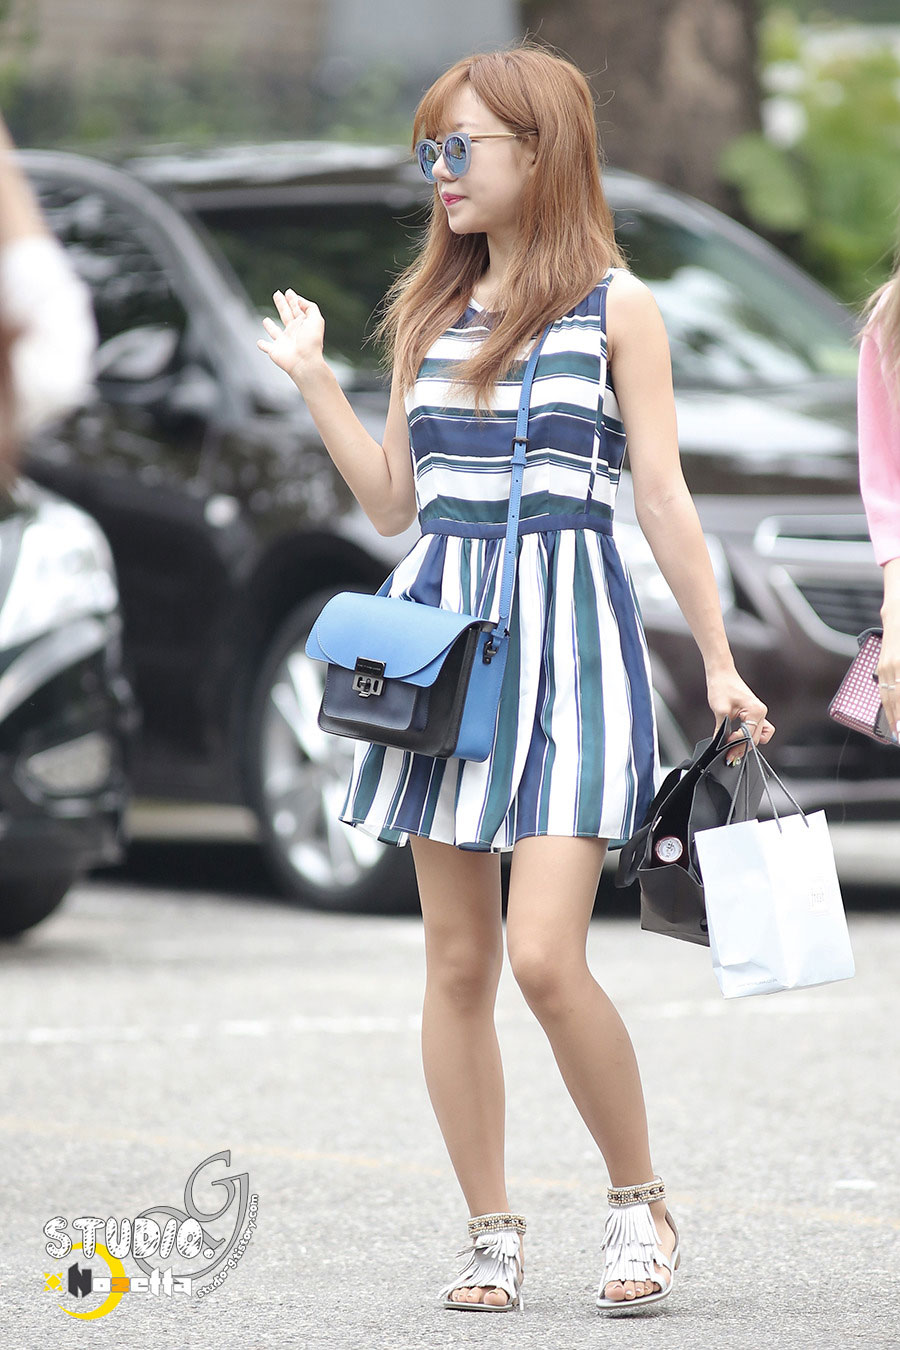 Apink Namjoo KBS Music Bank commute